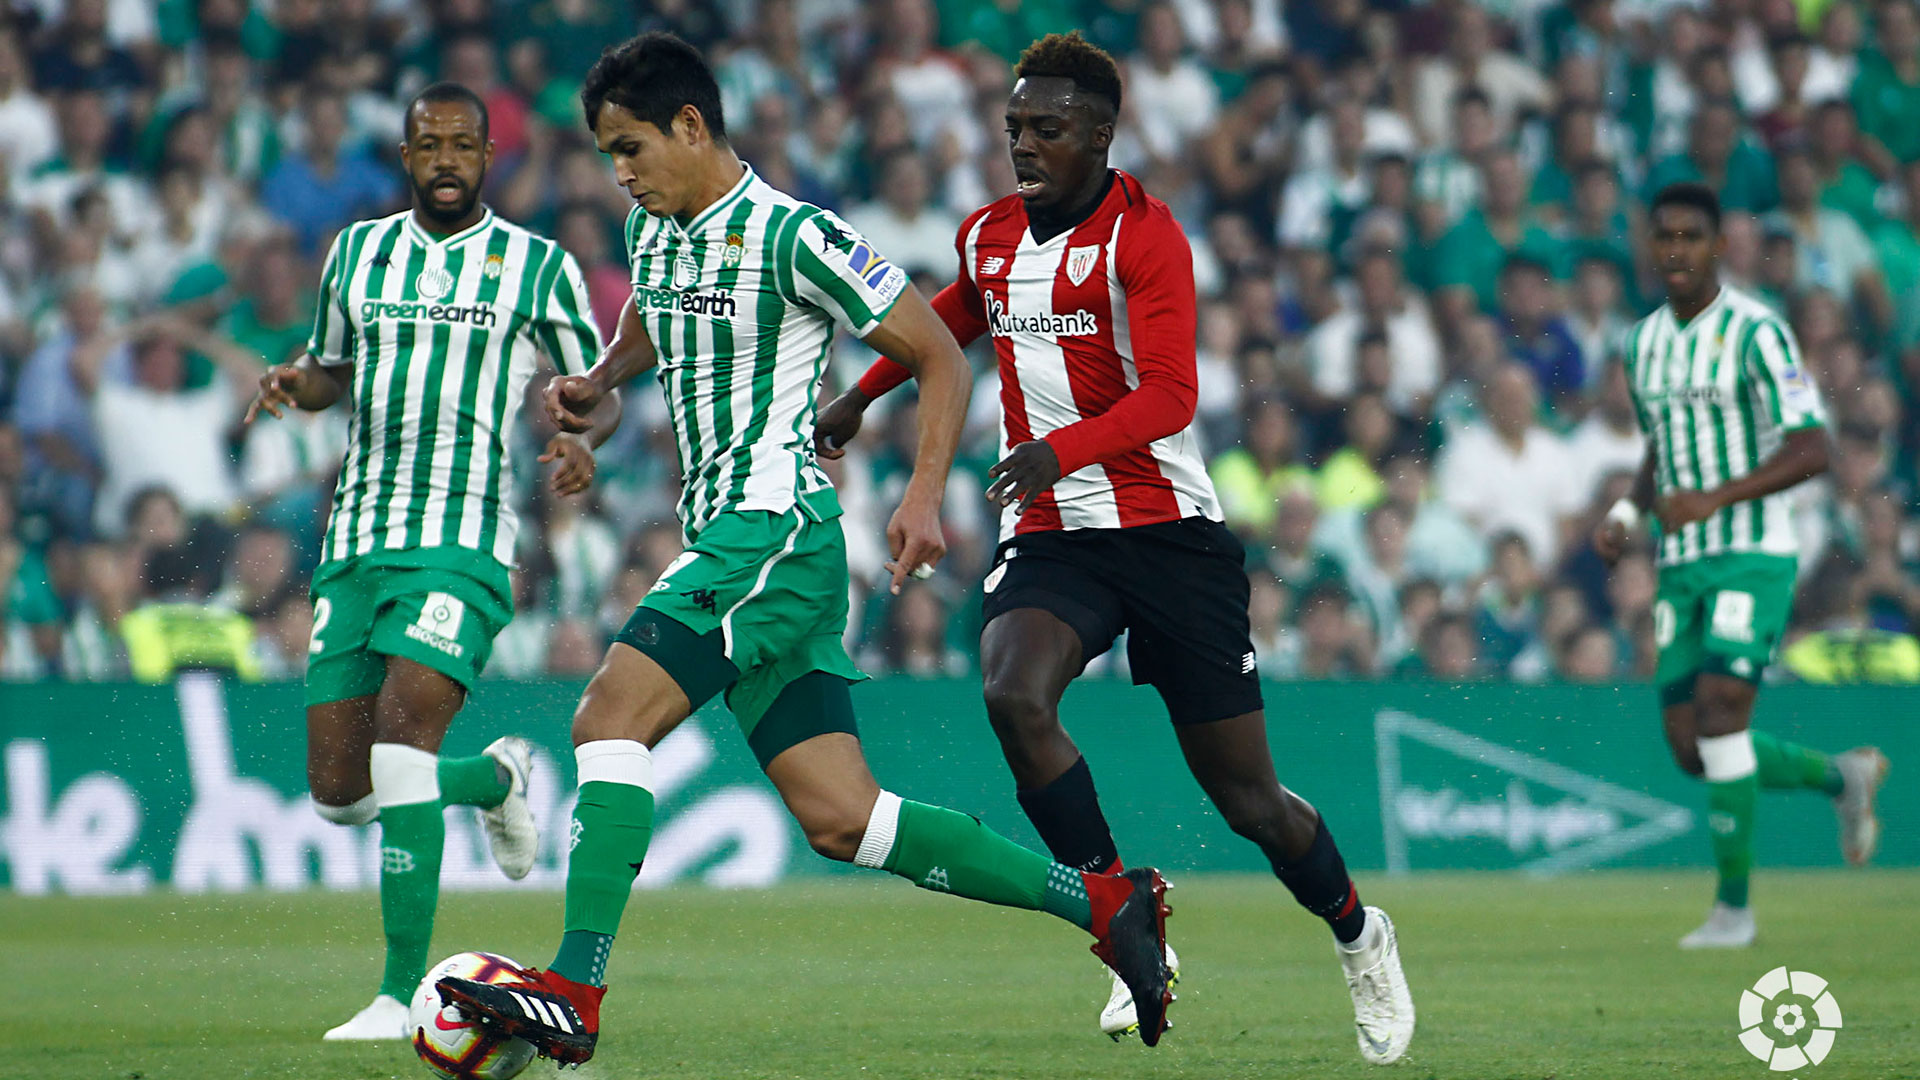 Athletic Club-Real Betis, venta de entradas